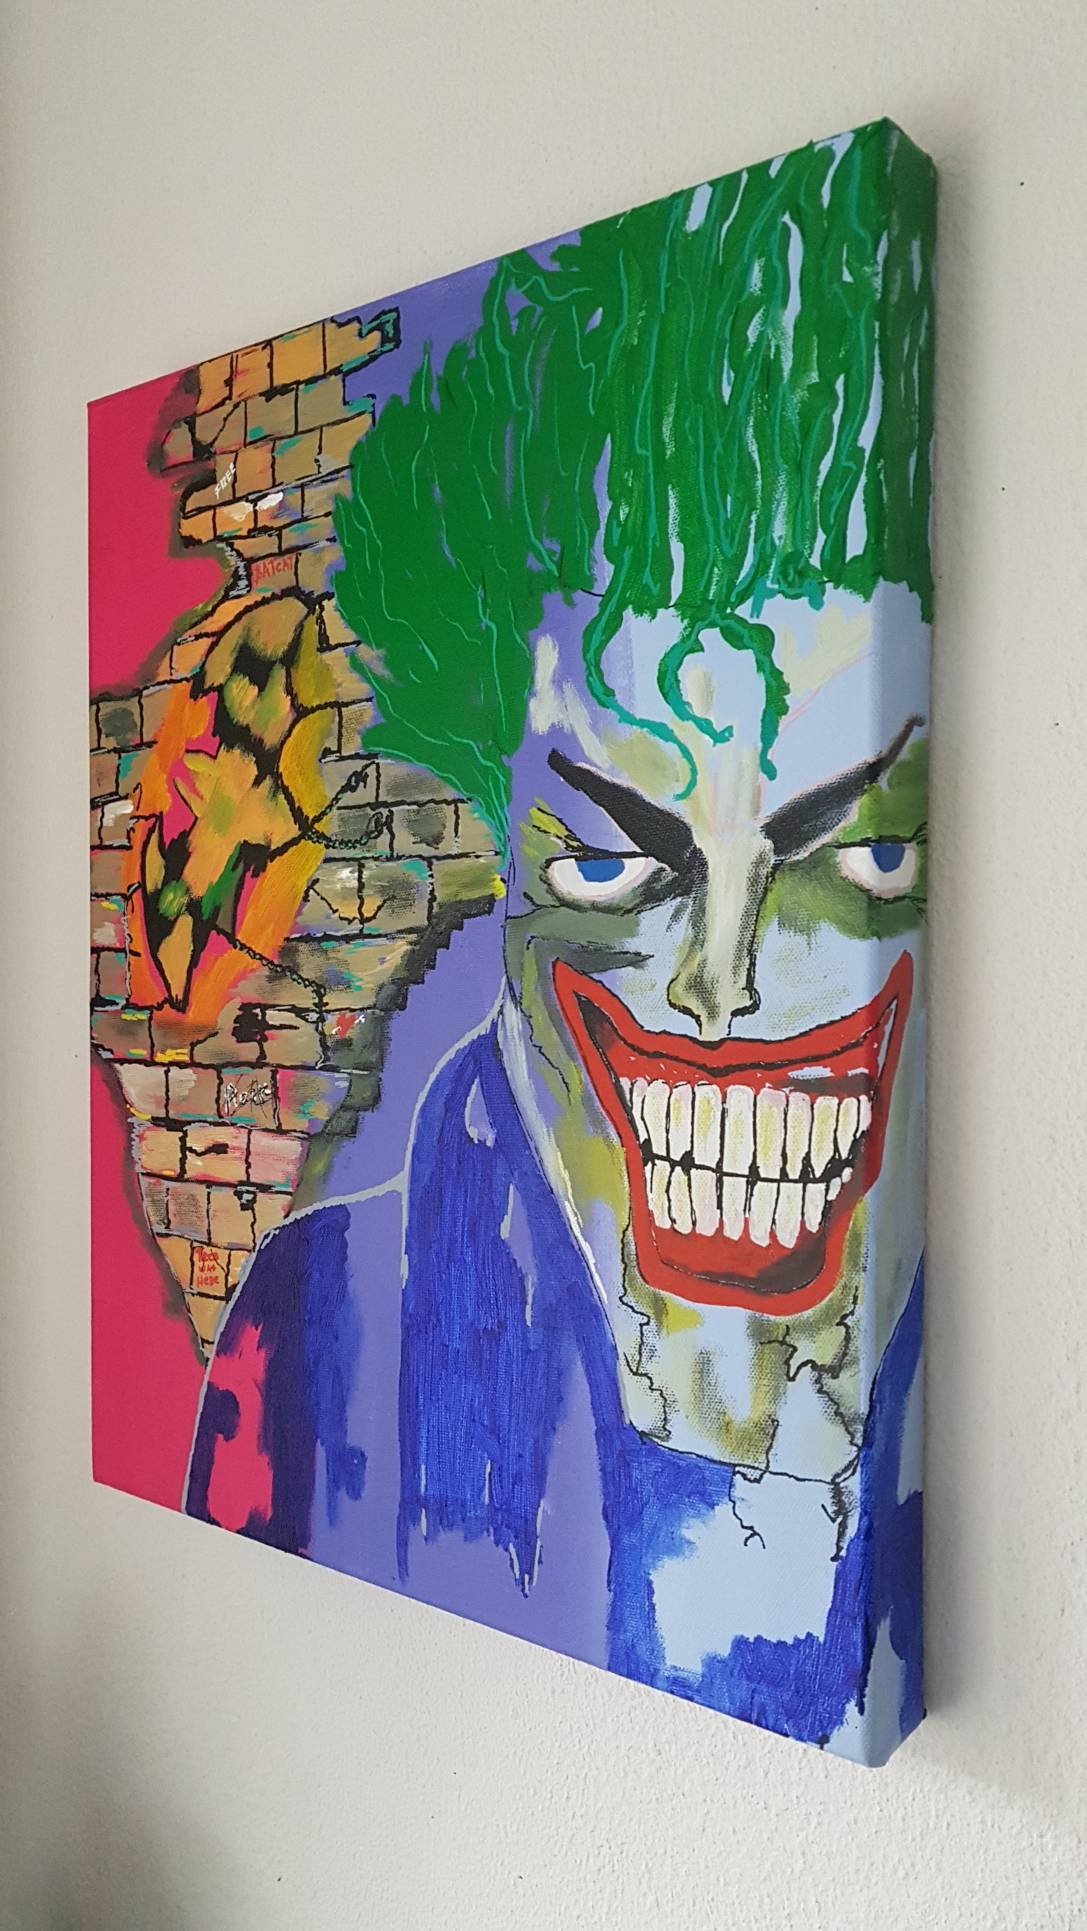 BATMAN THE JOKER 40X50X4 COMICS COLOUR PAINTING INSTAGRAM GOOGLE ART.